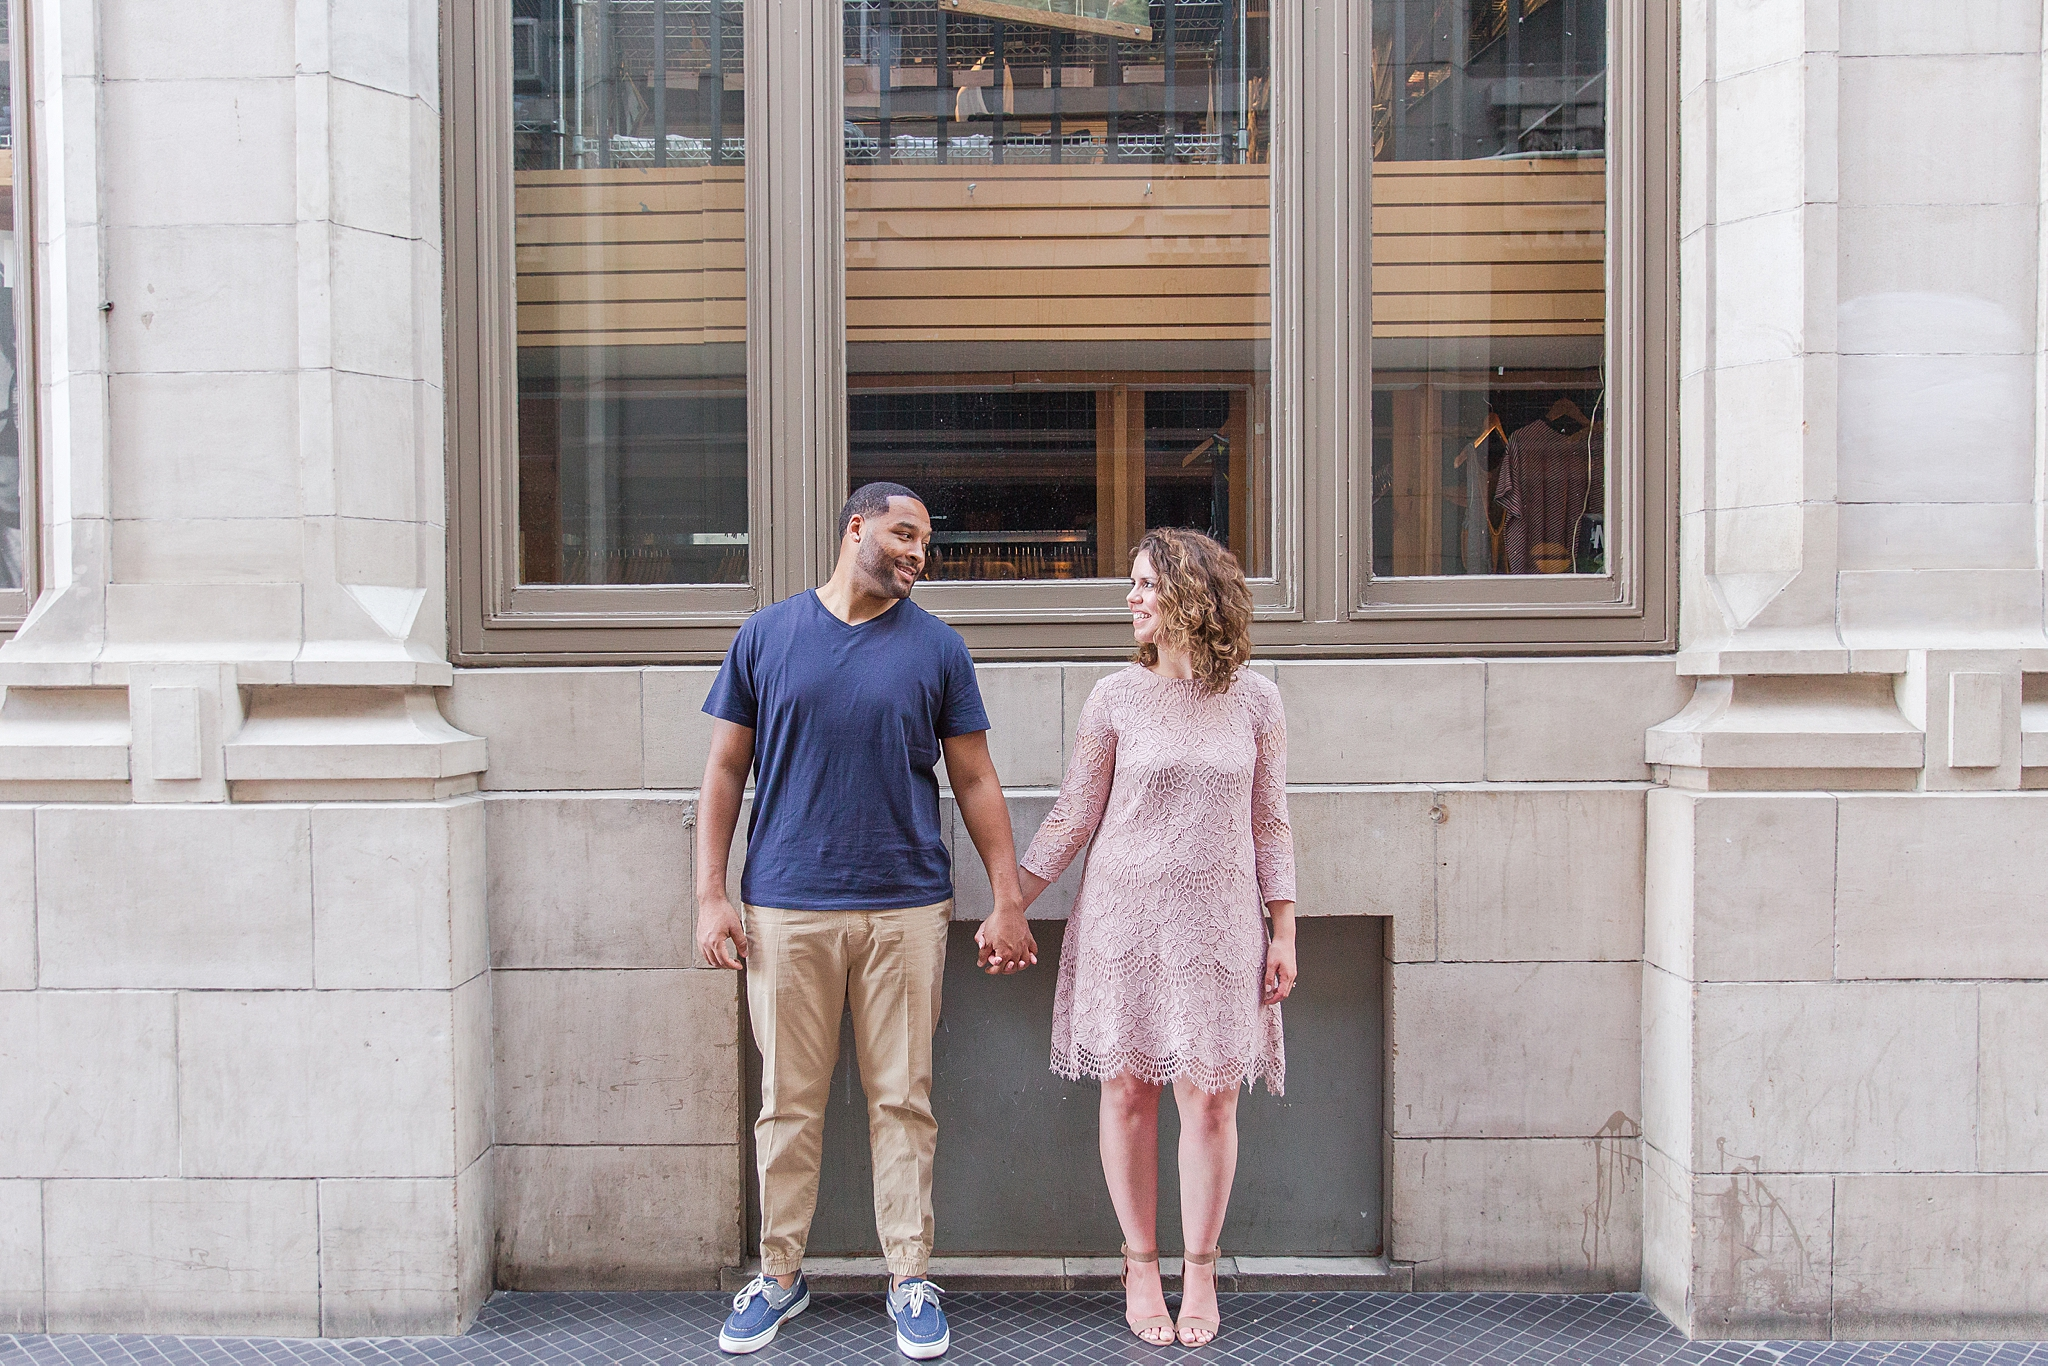 joyful-college-campus-engagement-photography-at-university-of-michigan-in-ann-arbor-mi-by-courtney-carolyn-photography_0018.jpg